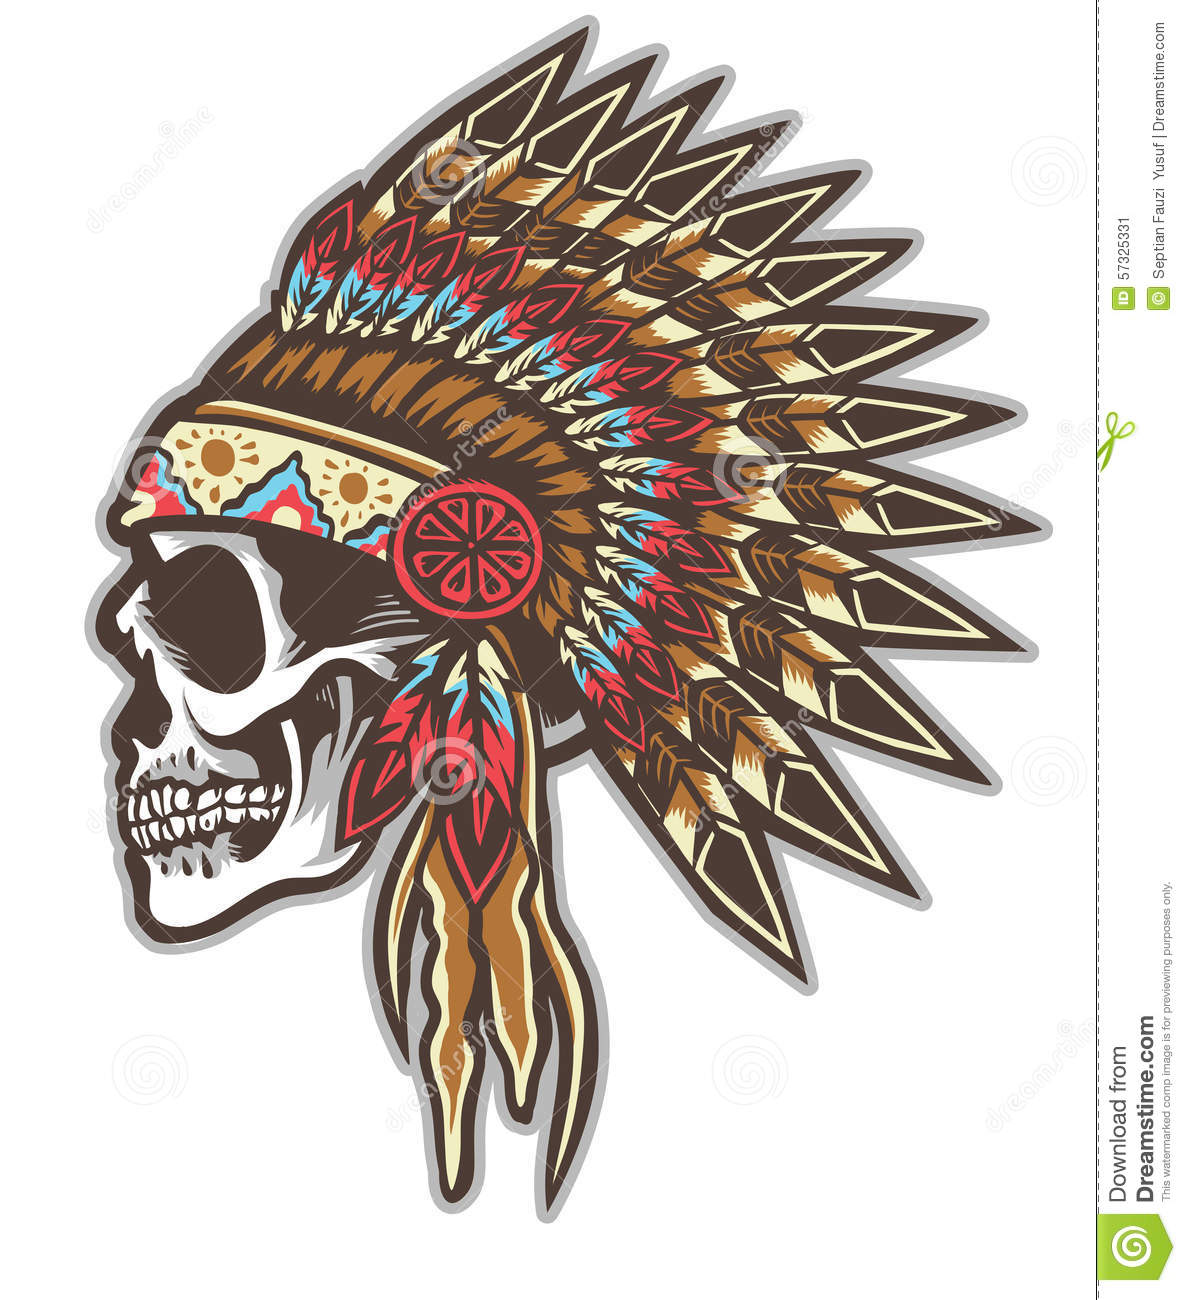 Cherokee For Less >> Indian Skull Stock Vector - Image: 57325331